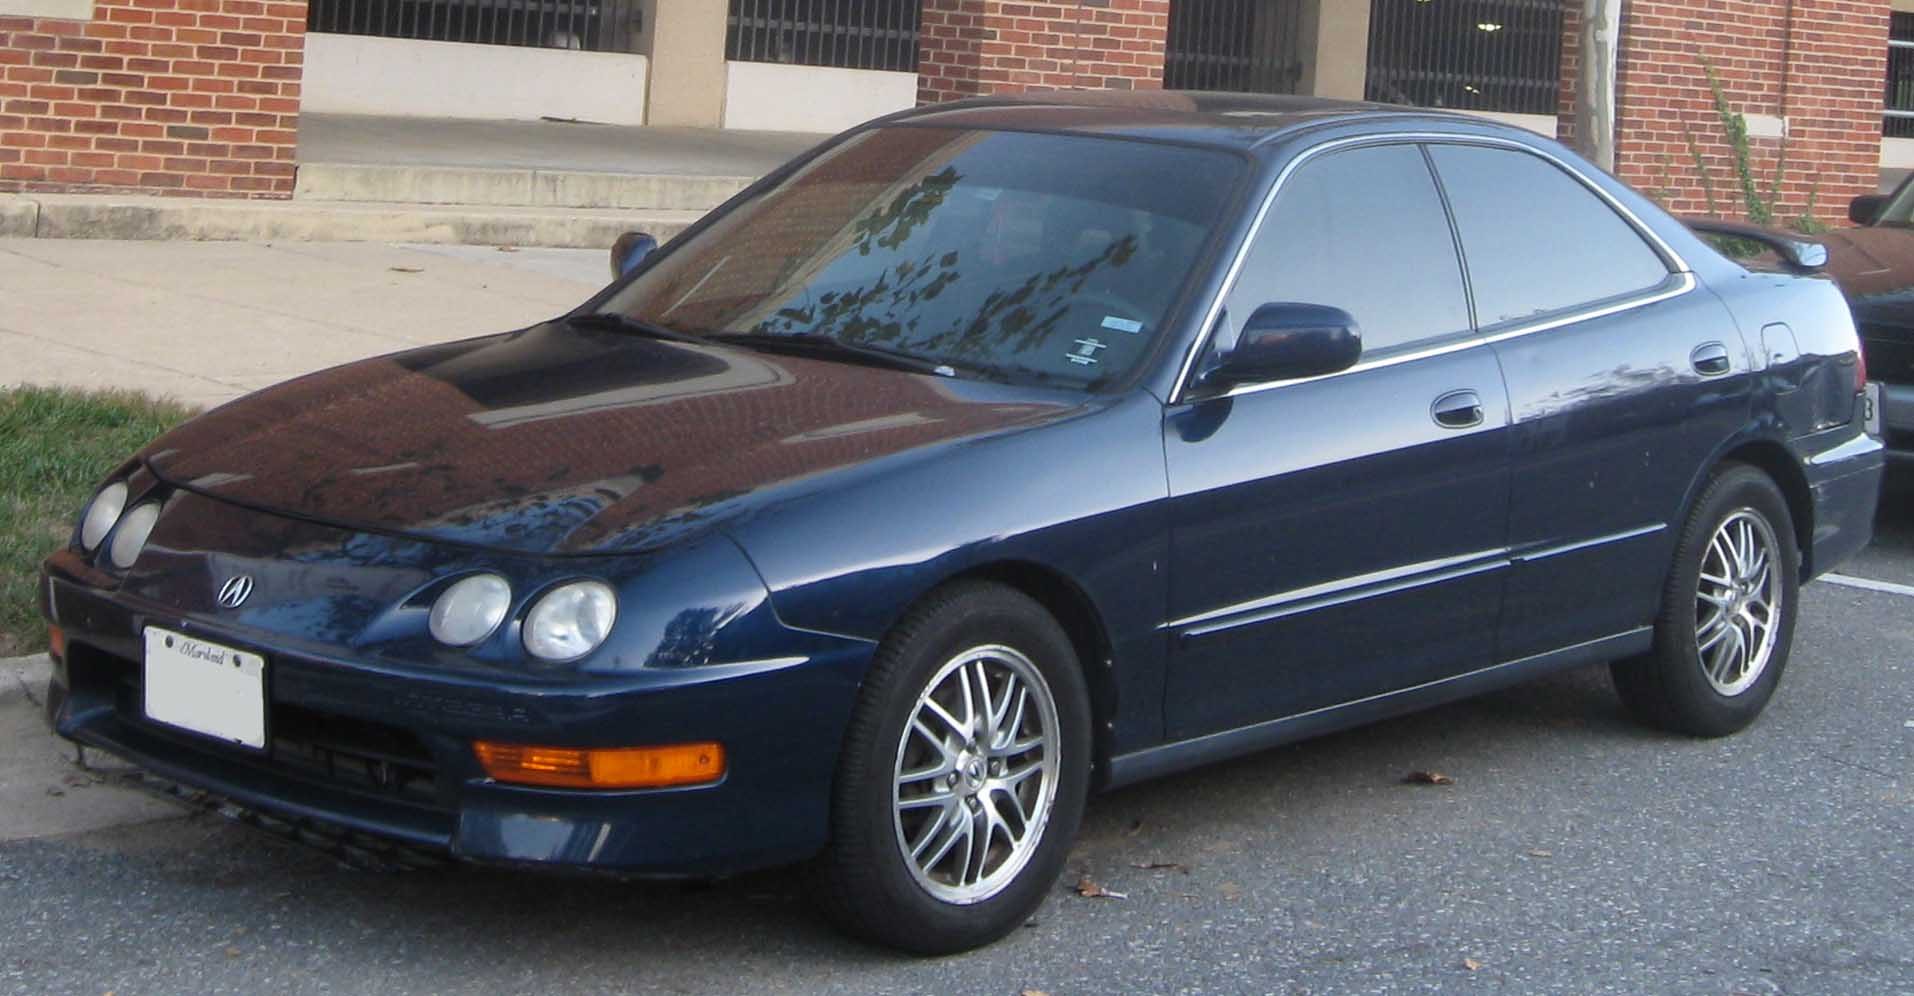 File:Acura Integra sedan.jpg